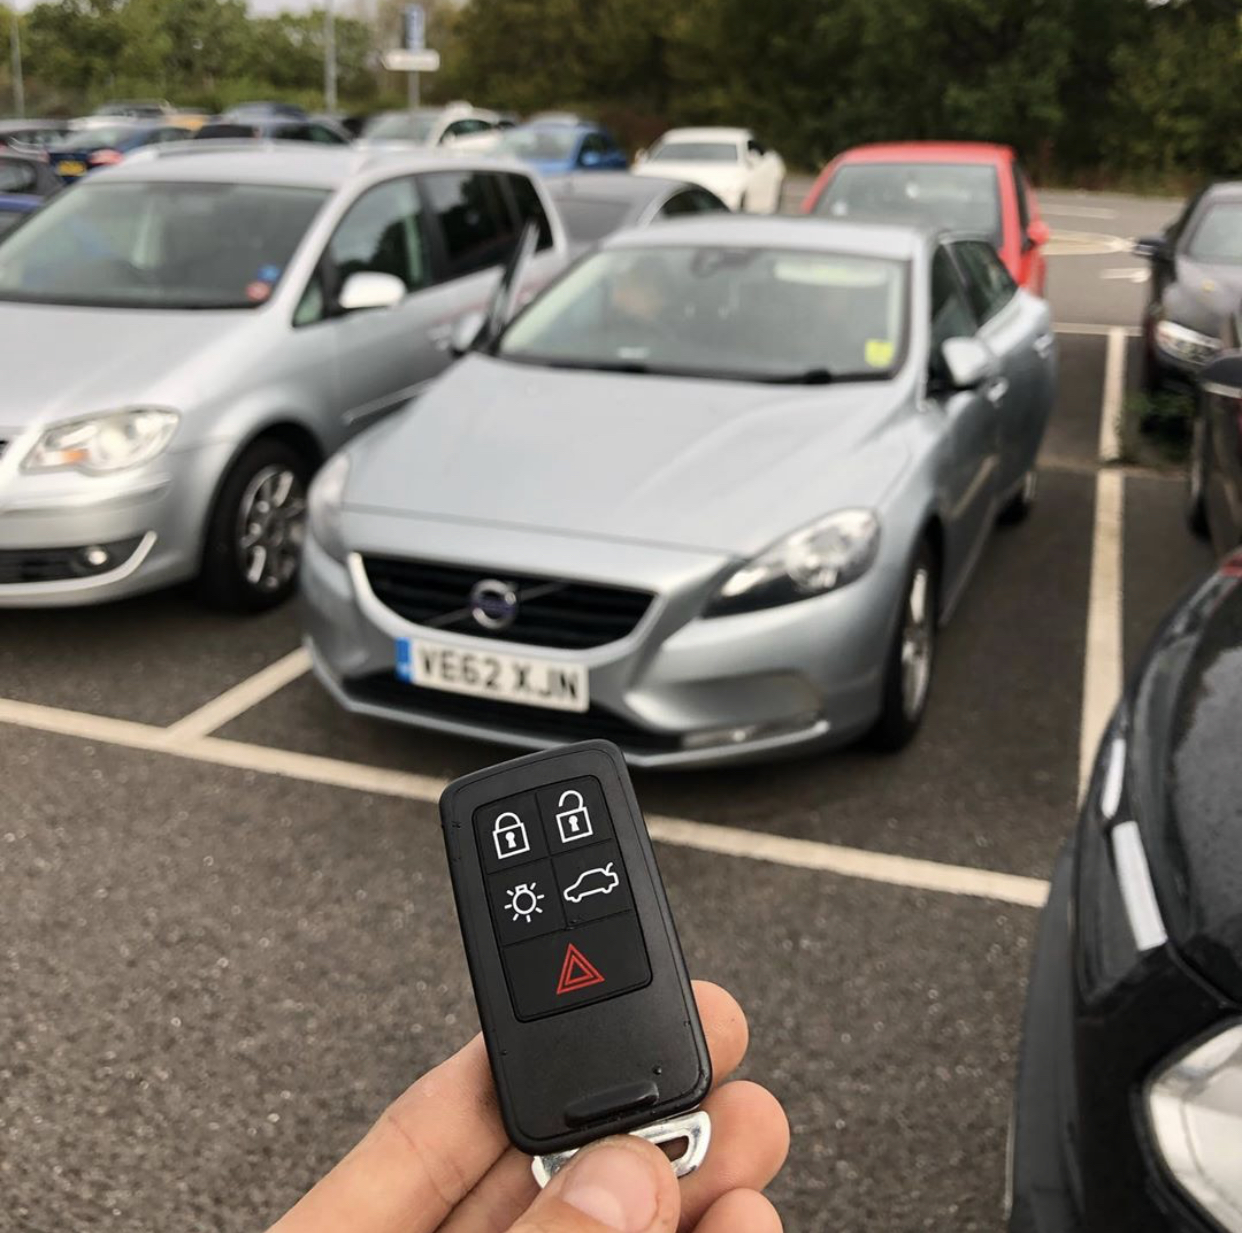 Volvo V40 Key Replacement